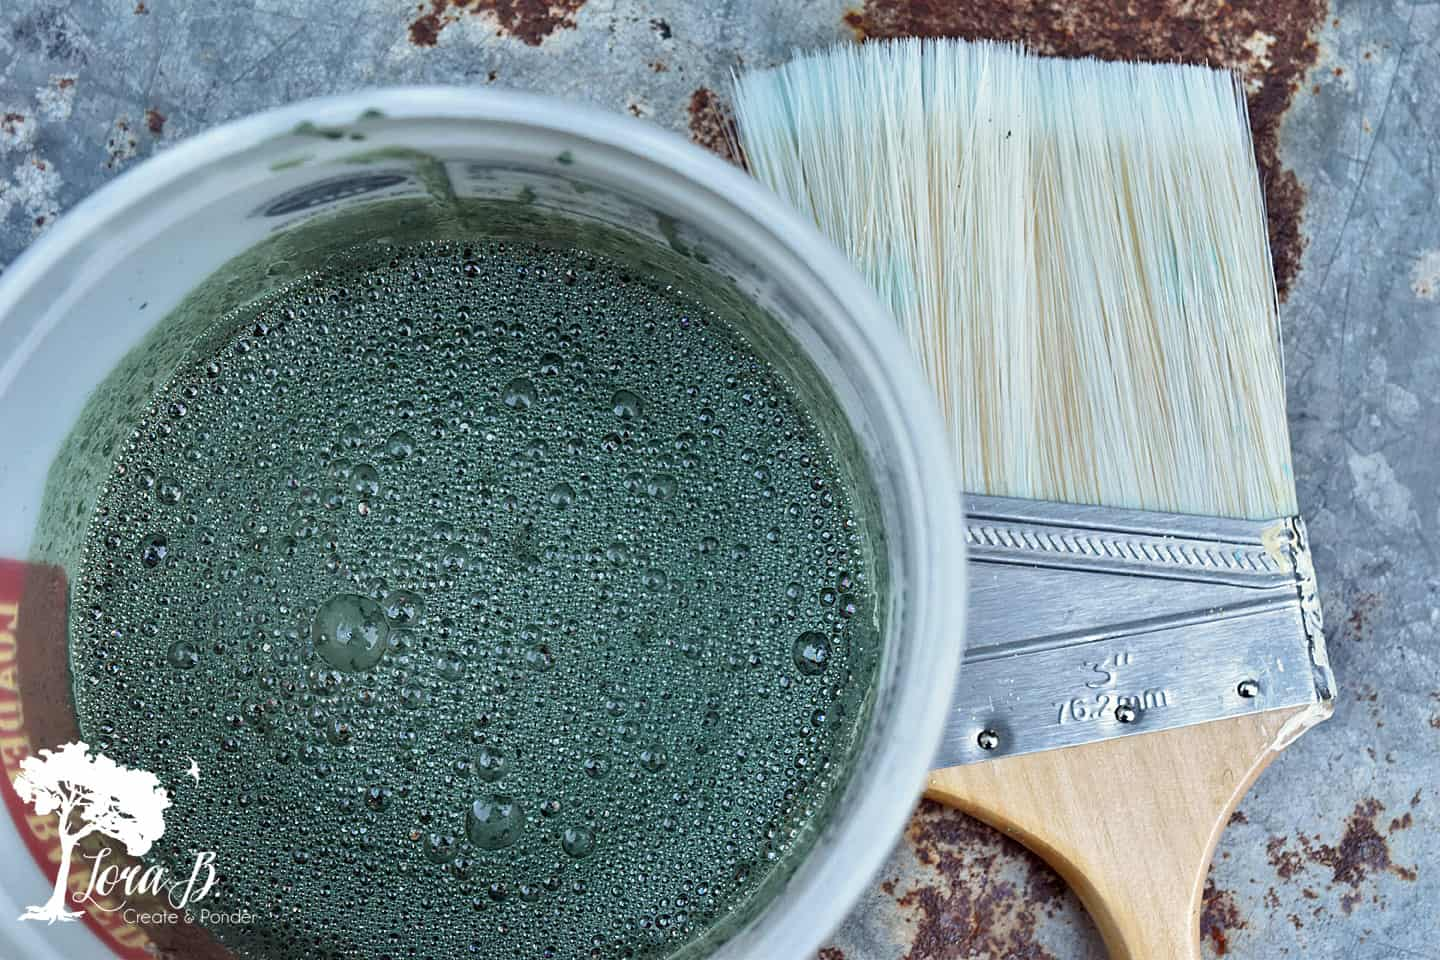 Miss Mustard Seed's Milk Paint mixture creates a chalkboard paint.